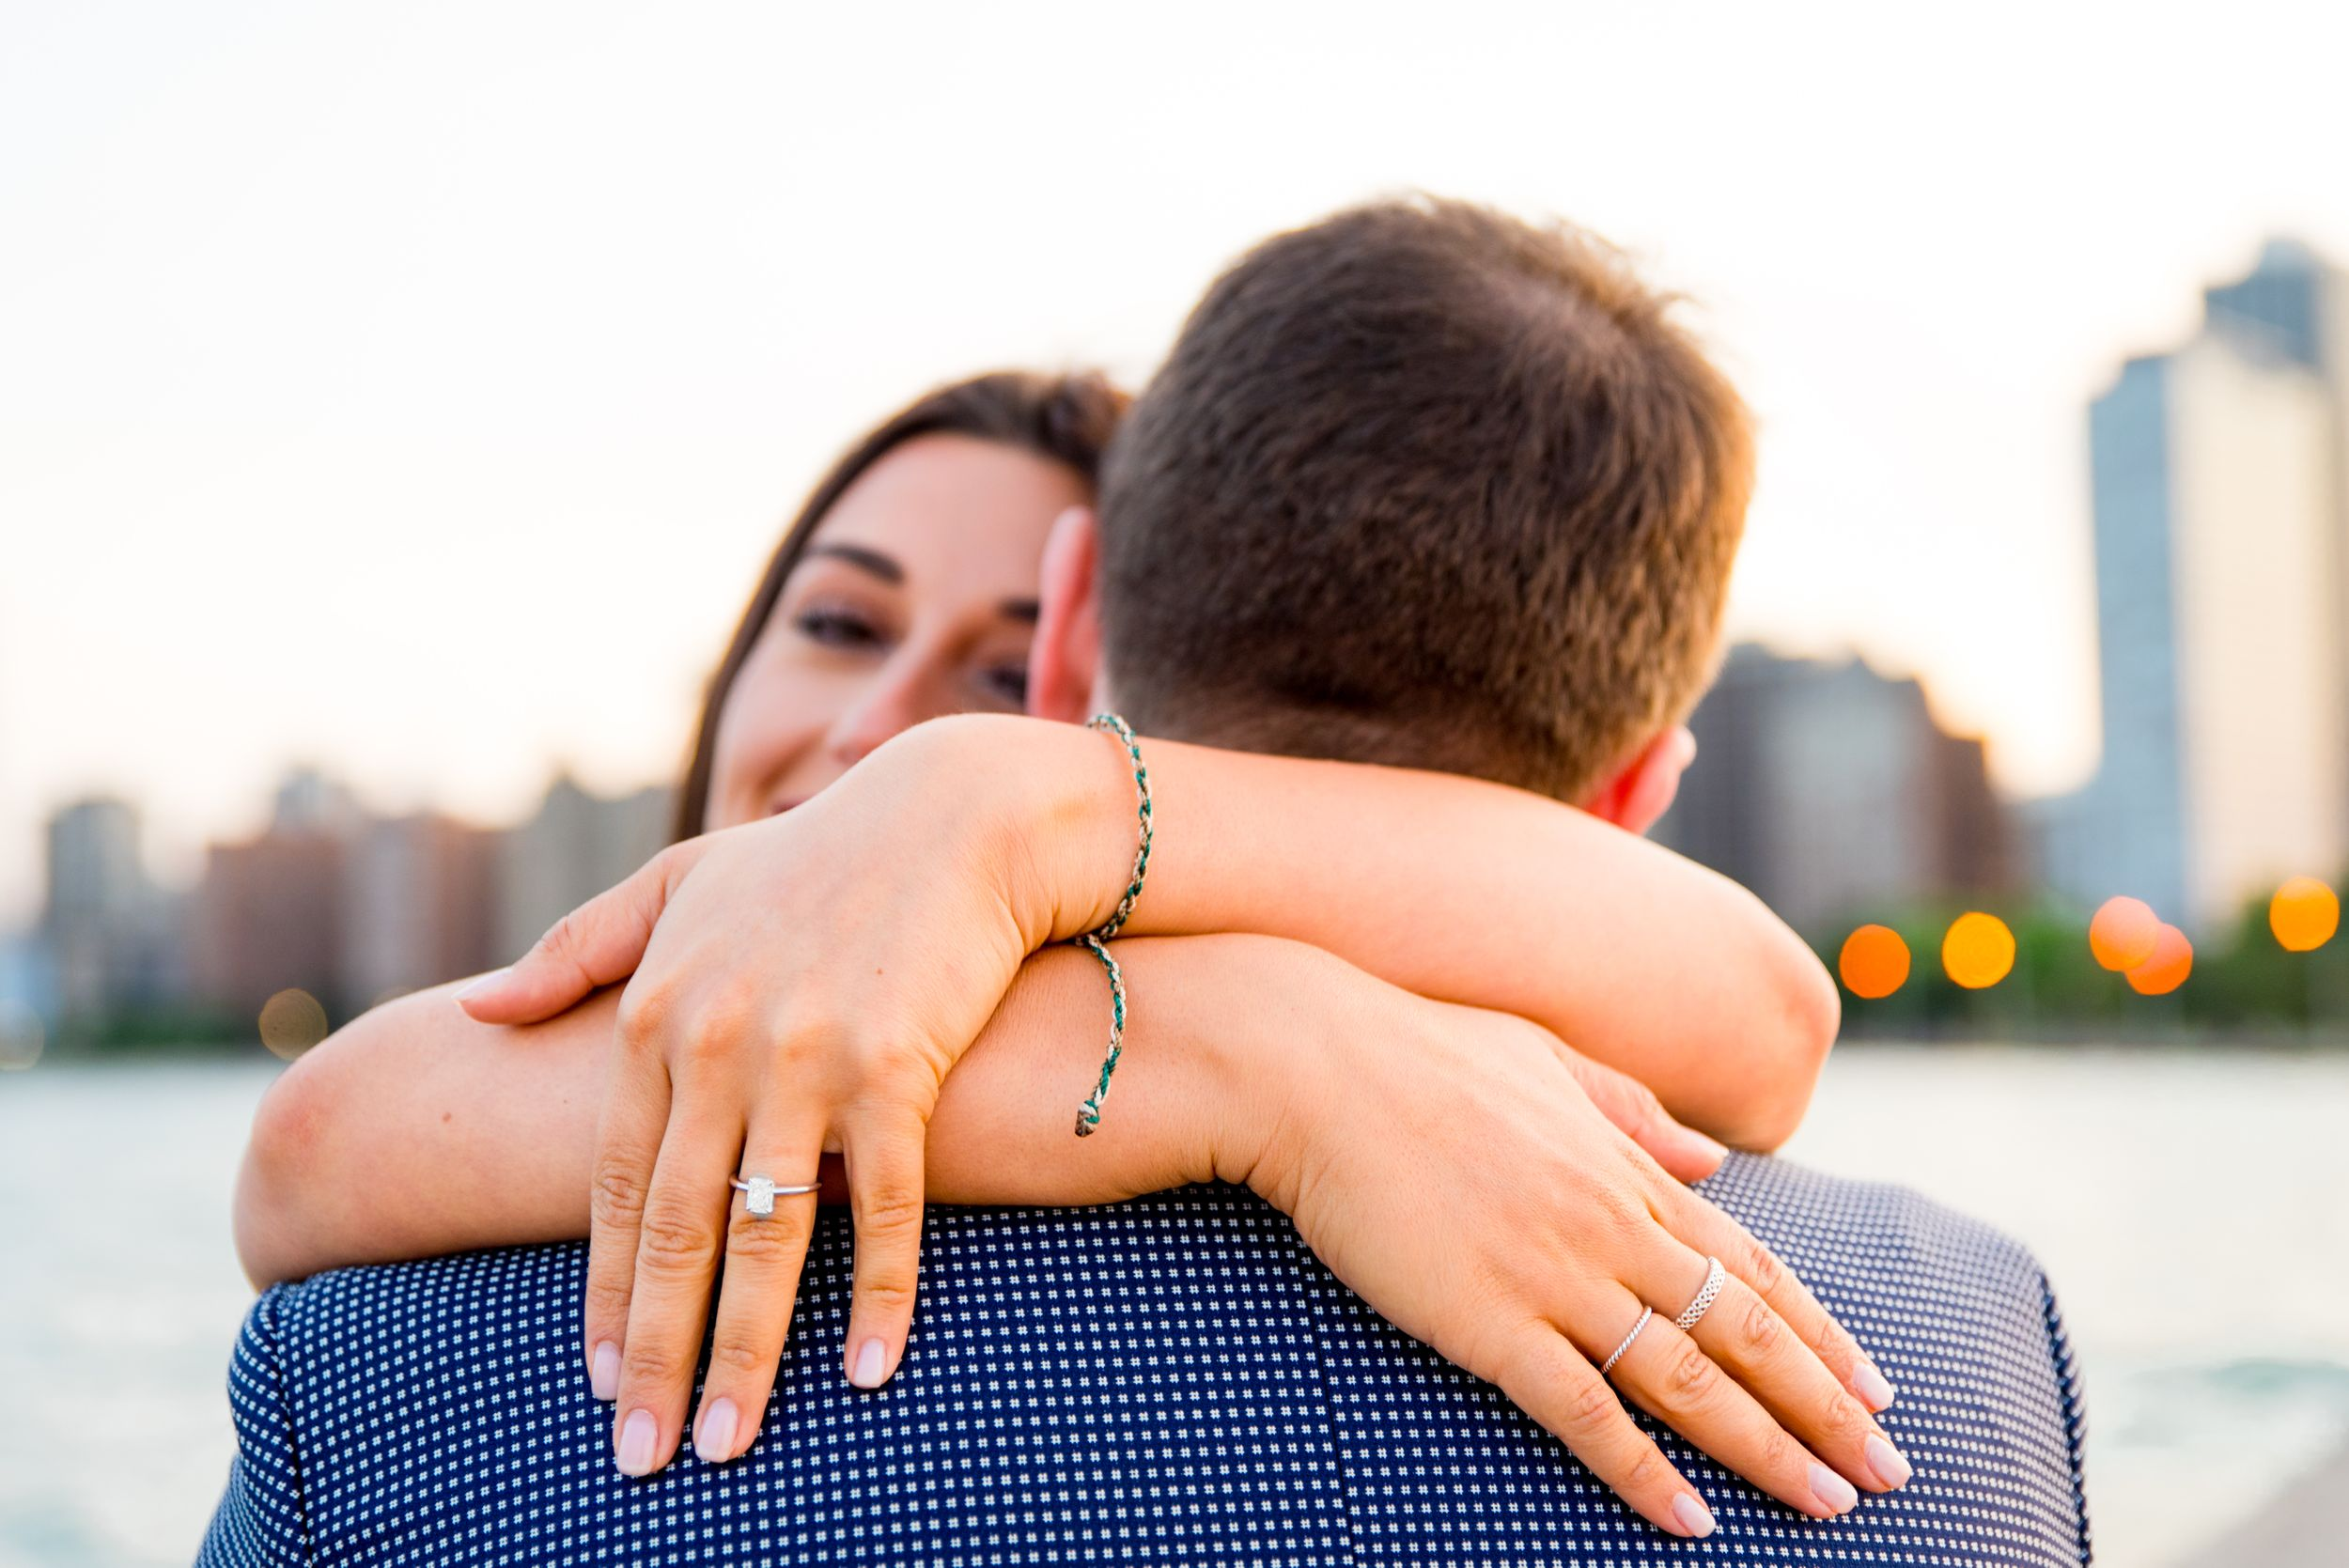 woman hugging new fiance showing off her ring and peeking over his shoulder